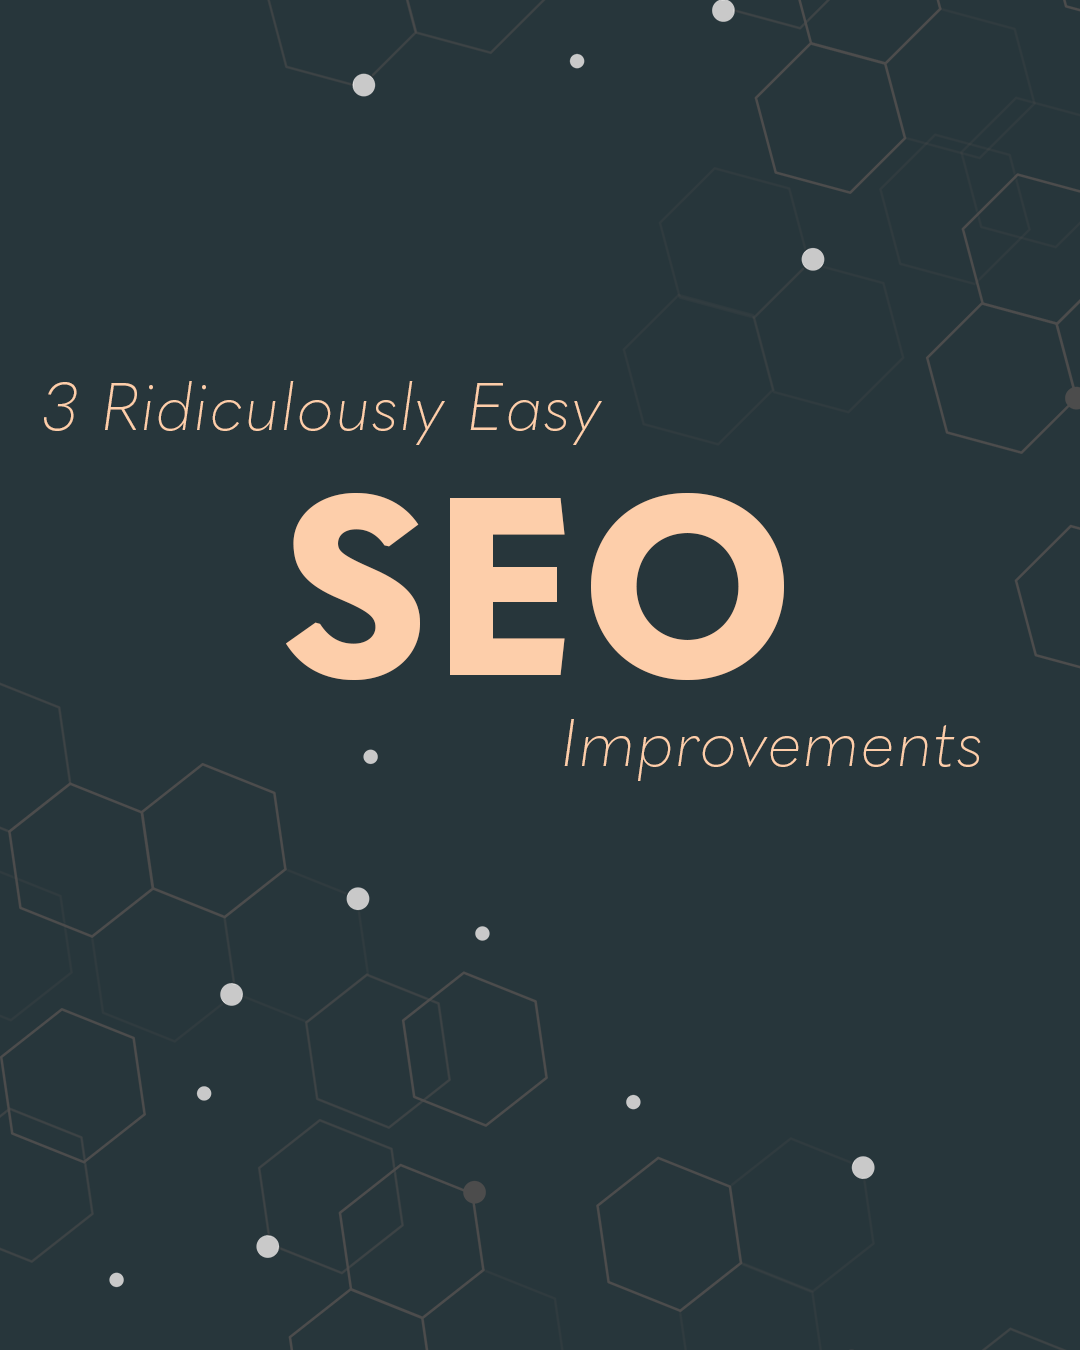 3 Ridiculously Easy SEO improvements